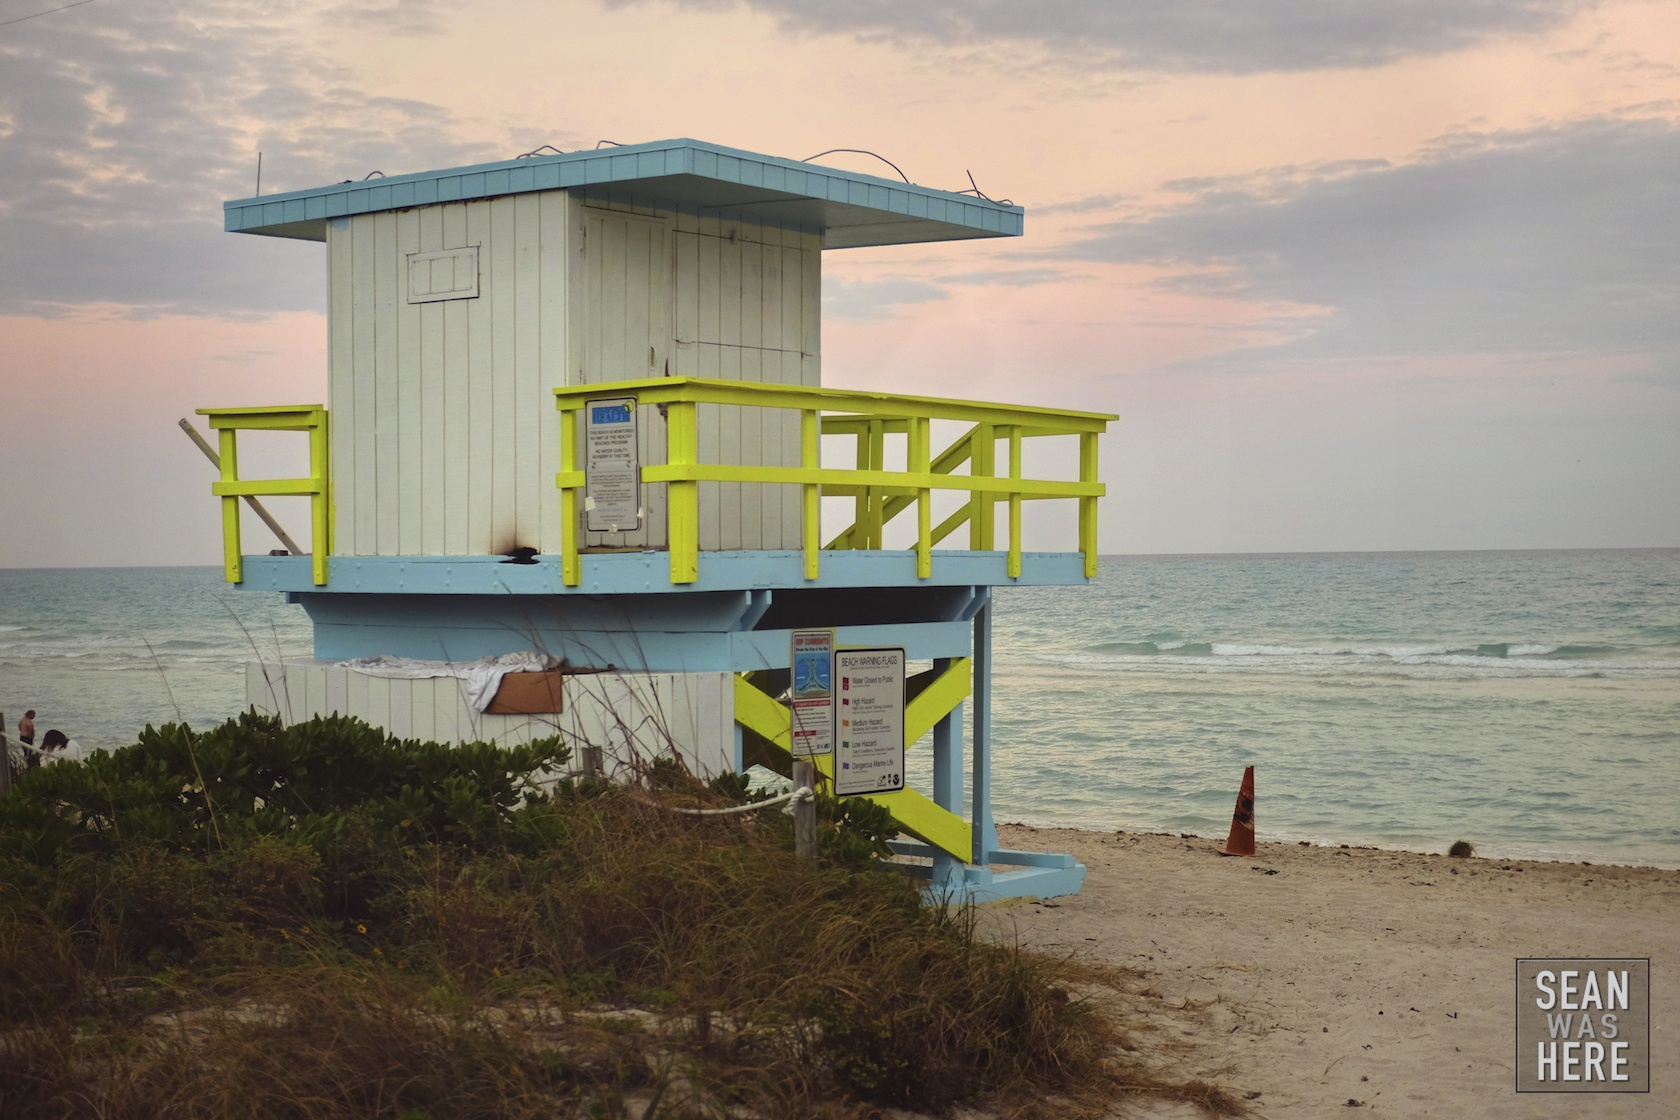 Miami Beach 53rd Street Lifeguard Stand